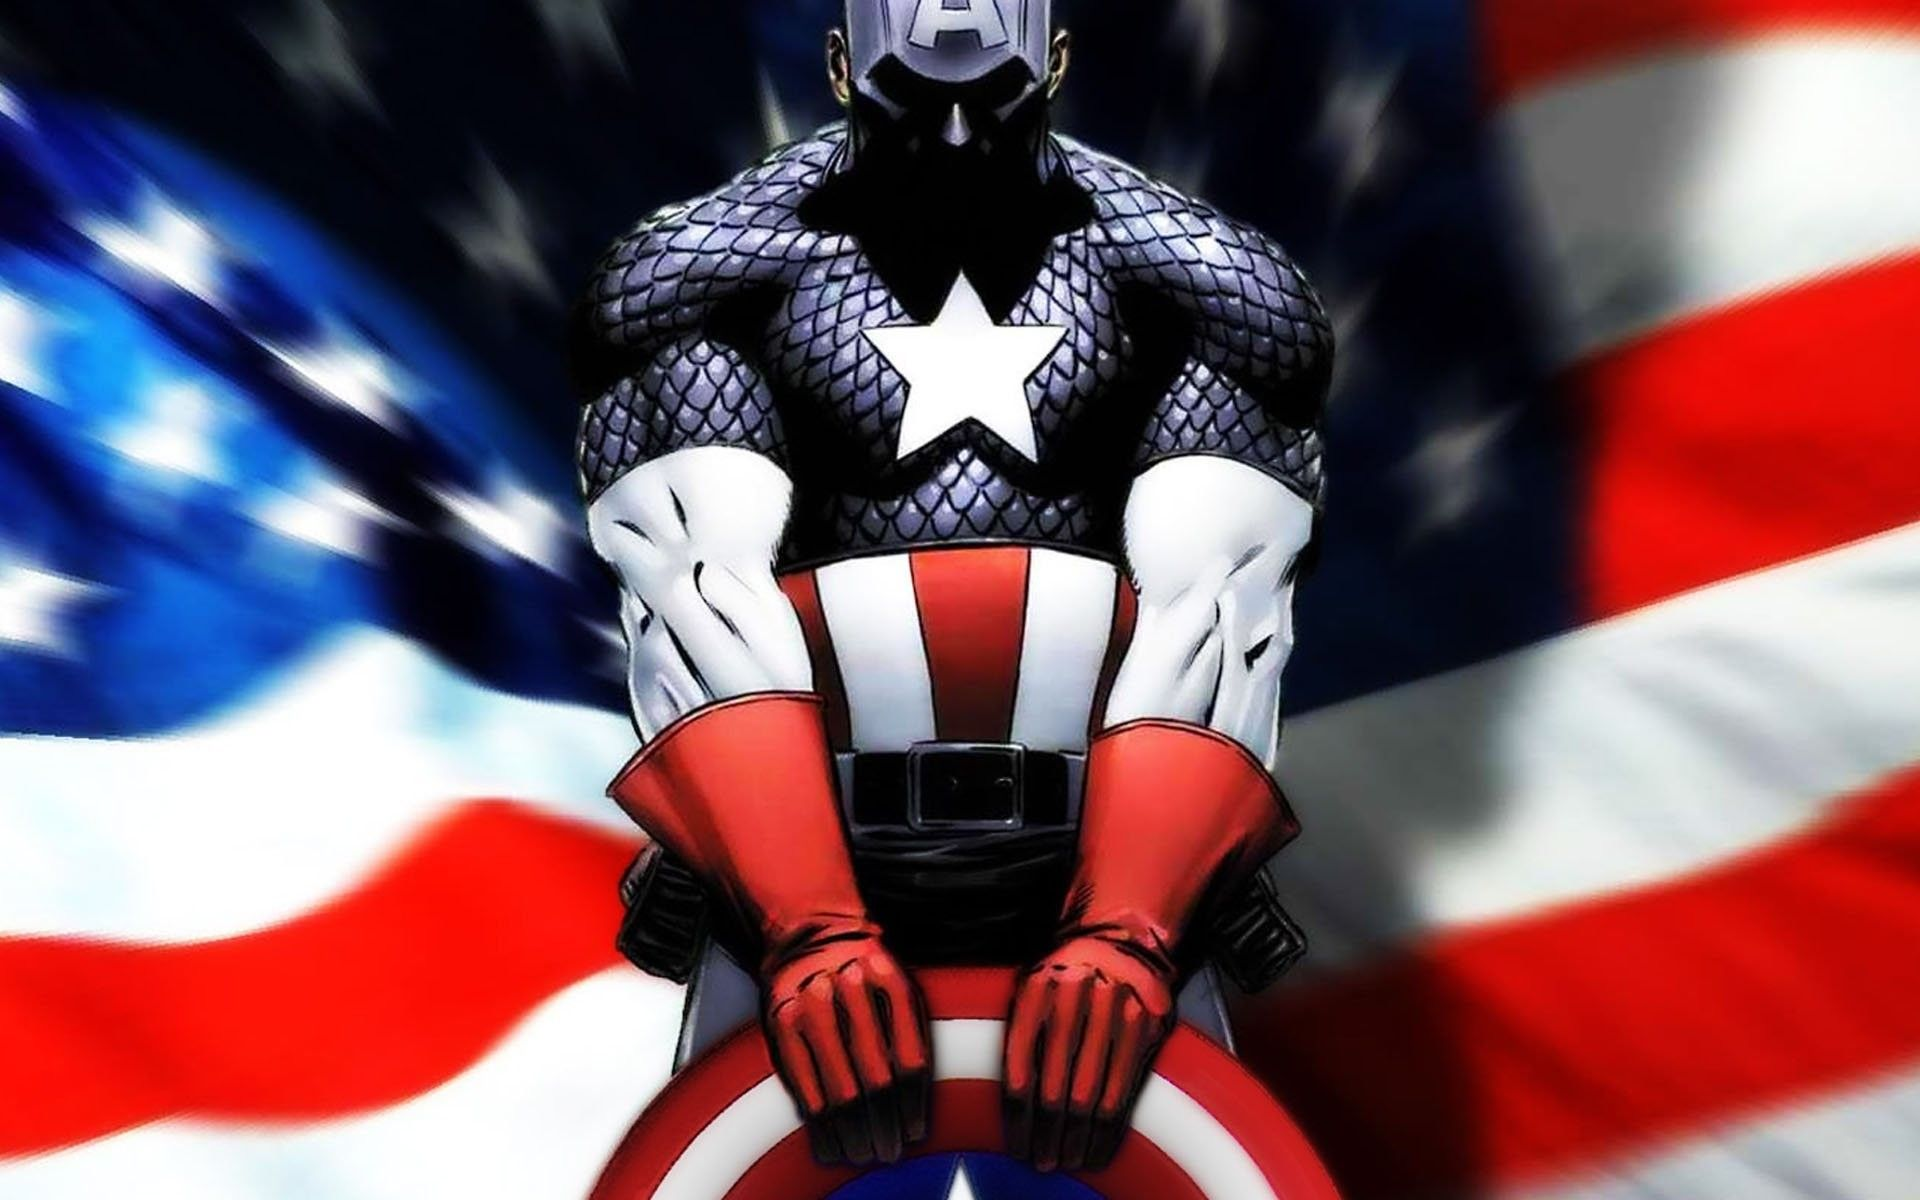 Pin by Sean on Captain America; Super Soldier Wallpaper